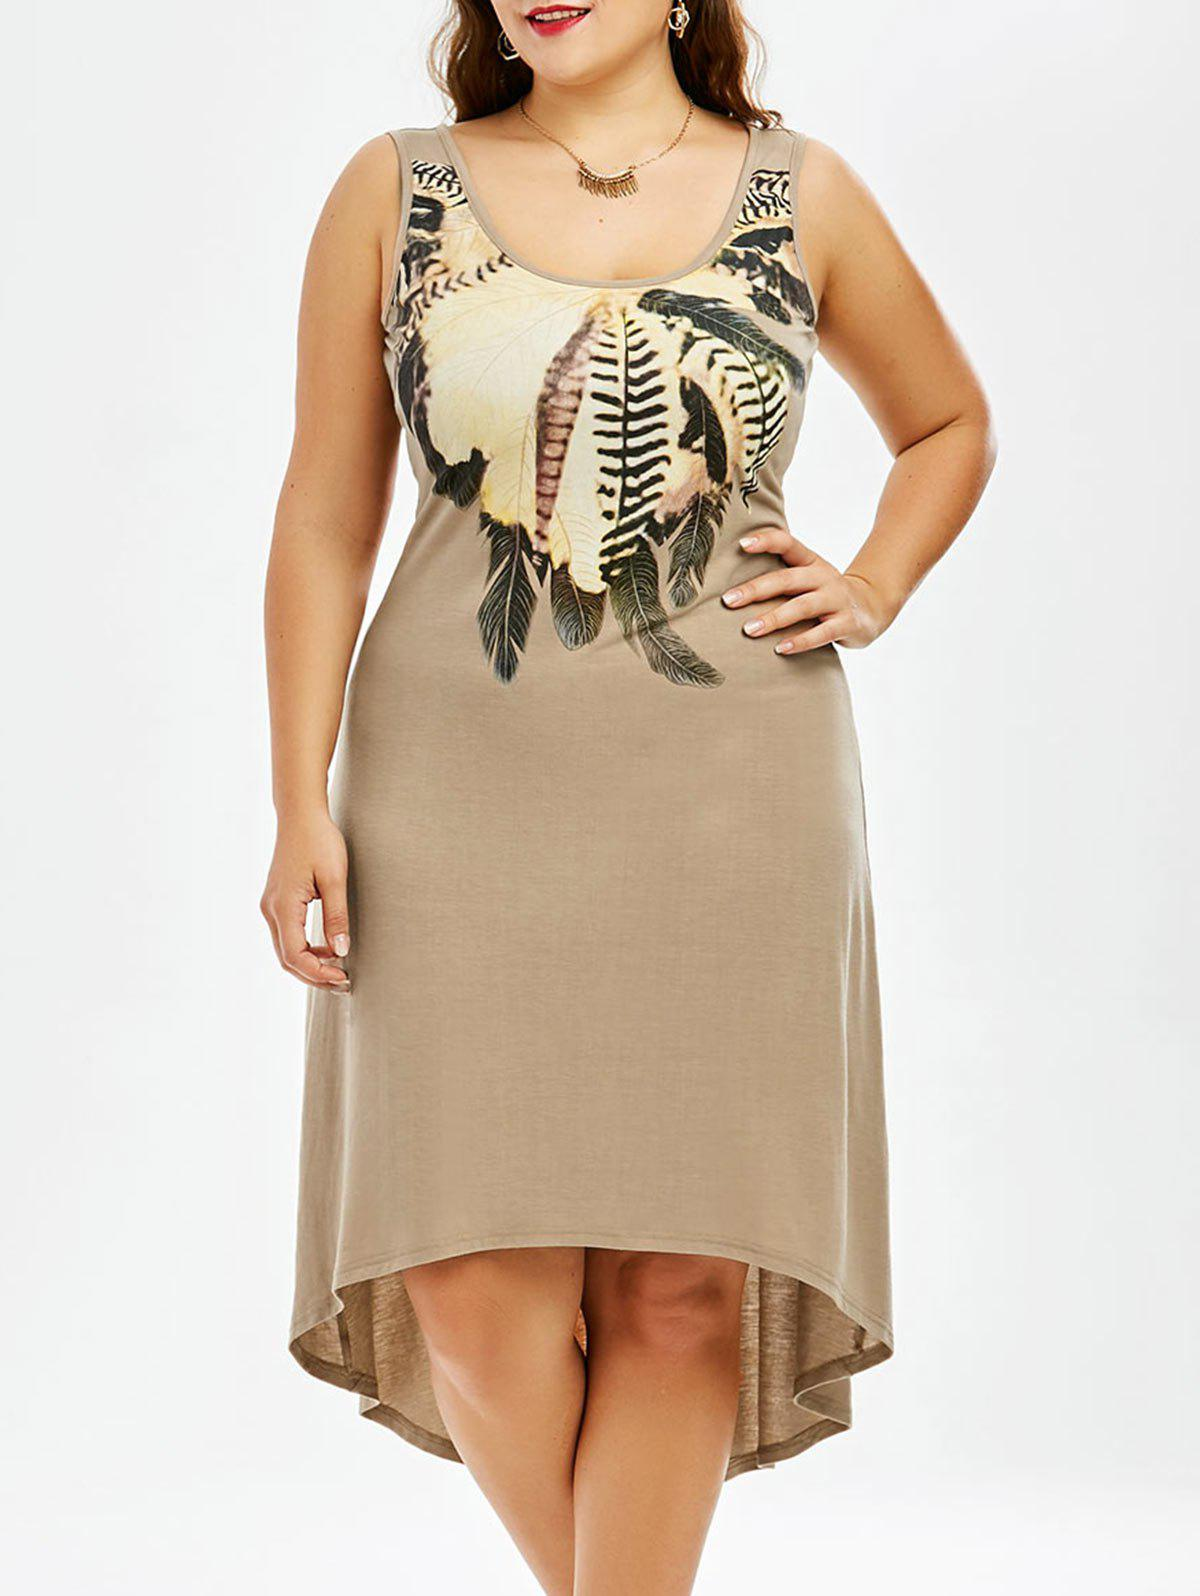 Plus Size High Low Hem Sleeveless Dress with Feather PrintWOMEN<br><br>Size: XL; Color: KHAKI; Style: Casual; Material: Polyester,Spandex; Silhouette: A-Line; Dresses Length: Knee-Length; Neckline: Scoop Neck; Sleeve Length: Sleeveless; Pattern Type: Feather; With Belt: No; Season: Summer; Weight: 0.4800kg; Package Contents: 1 x Dress;